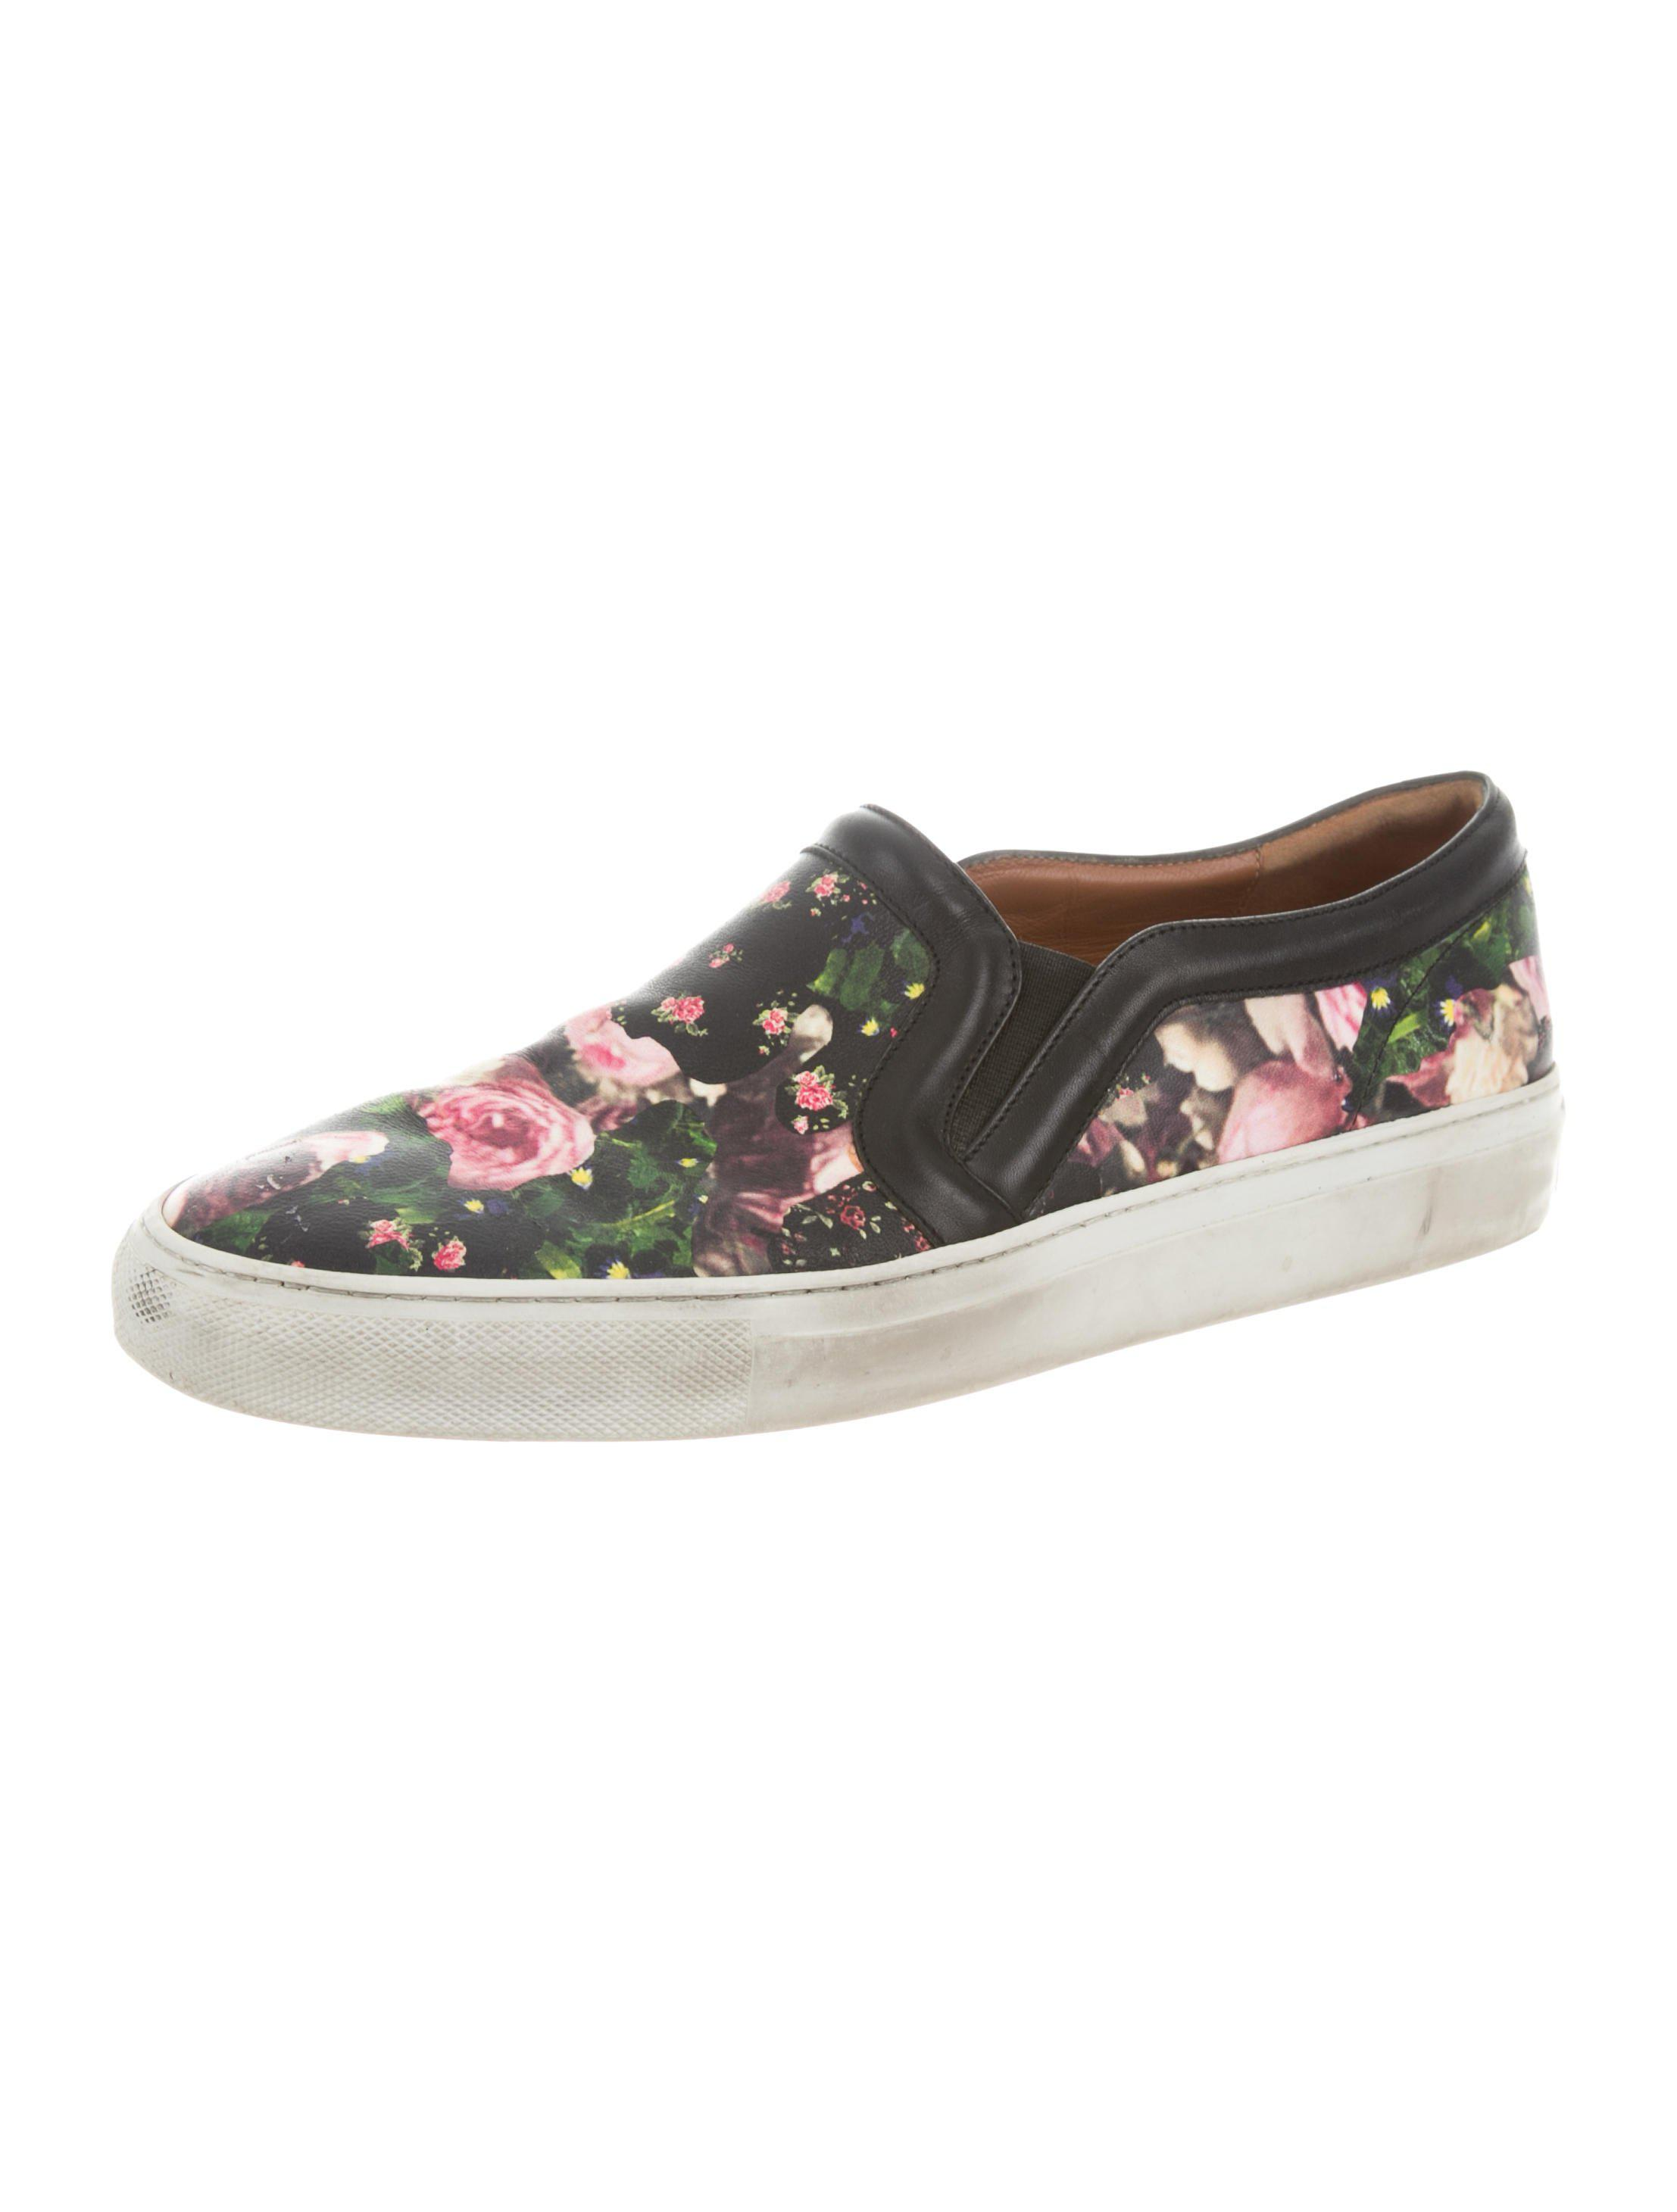 cheap free shipping Givenchy Roses Camouflage Slip-On Sneakers outlet locations sale online r38d7